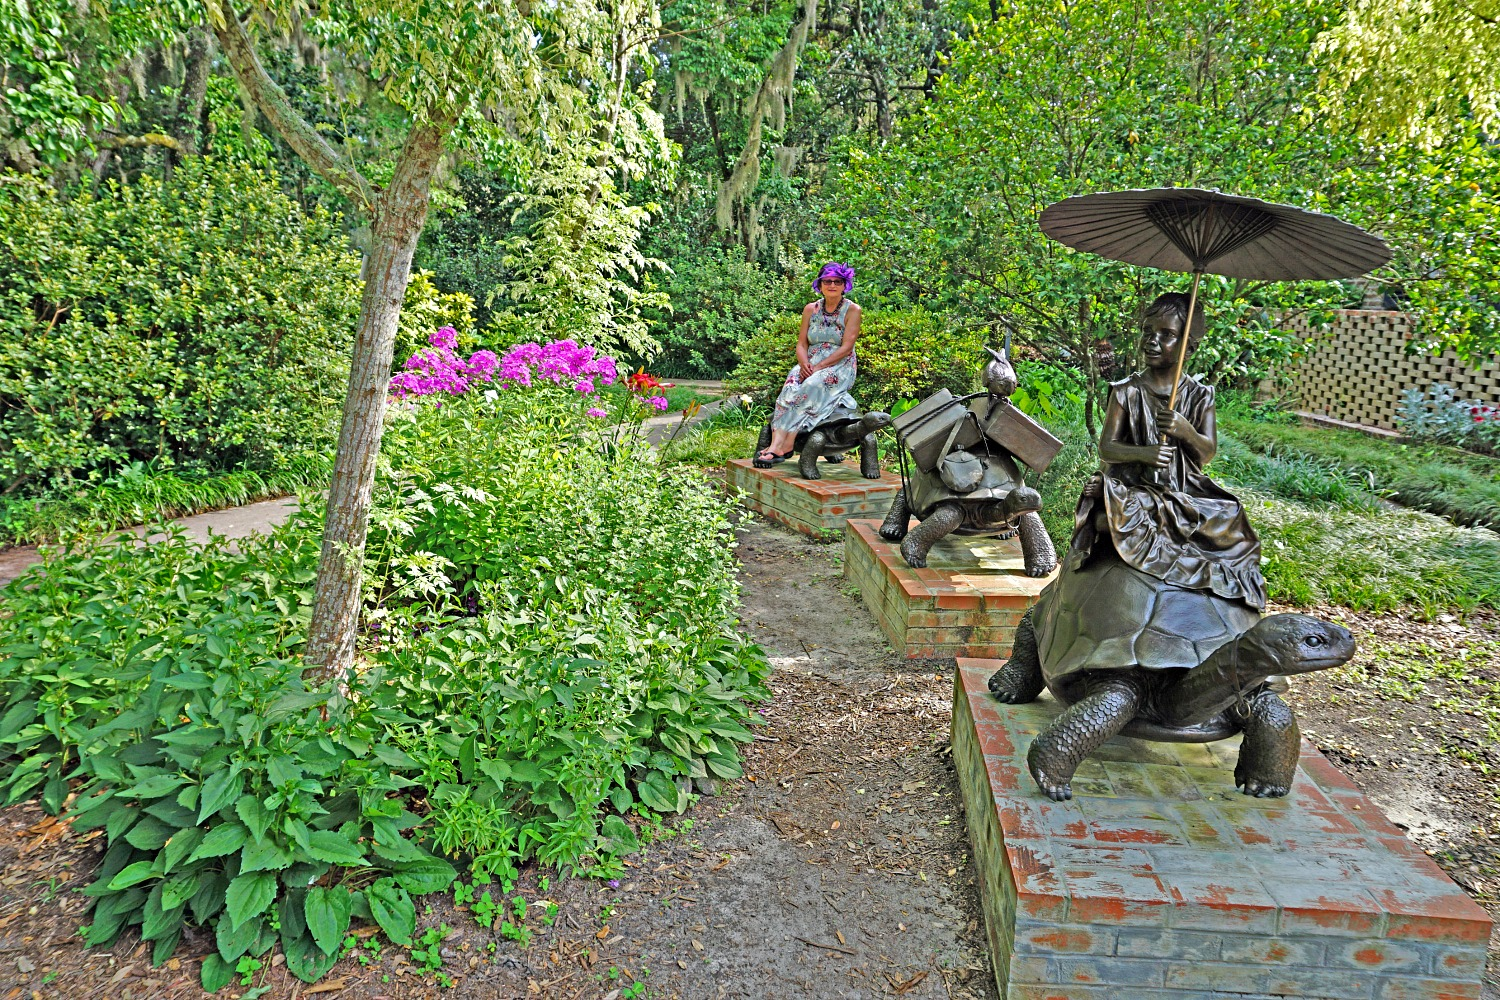 Many sculptures in Brookgreen Gardens will spark children's interest.